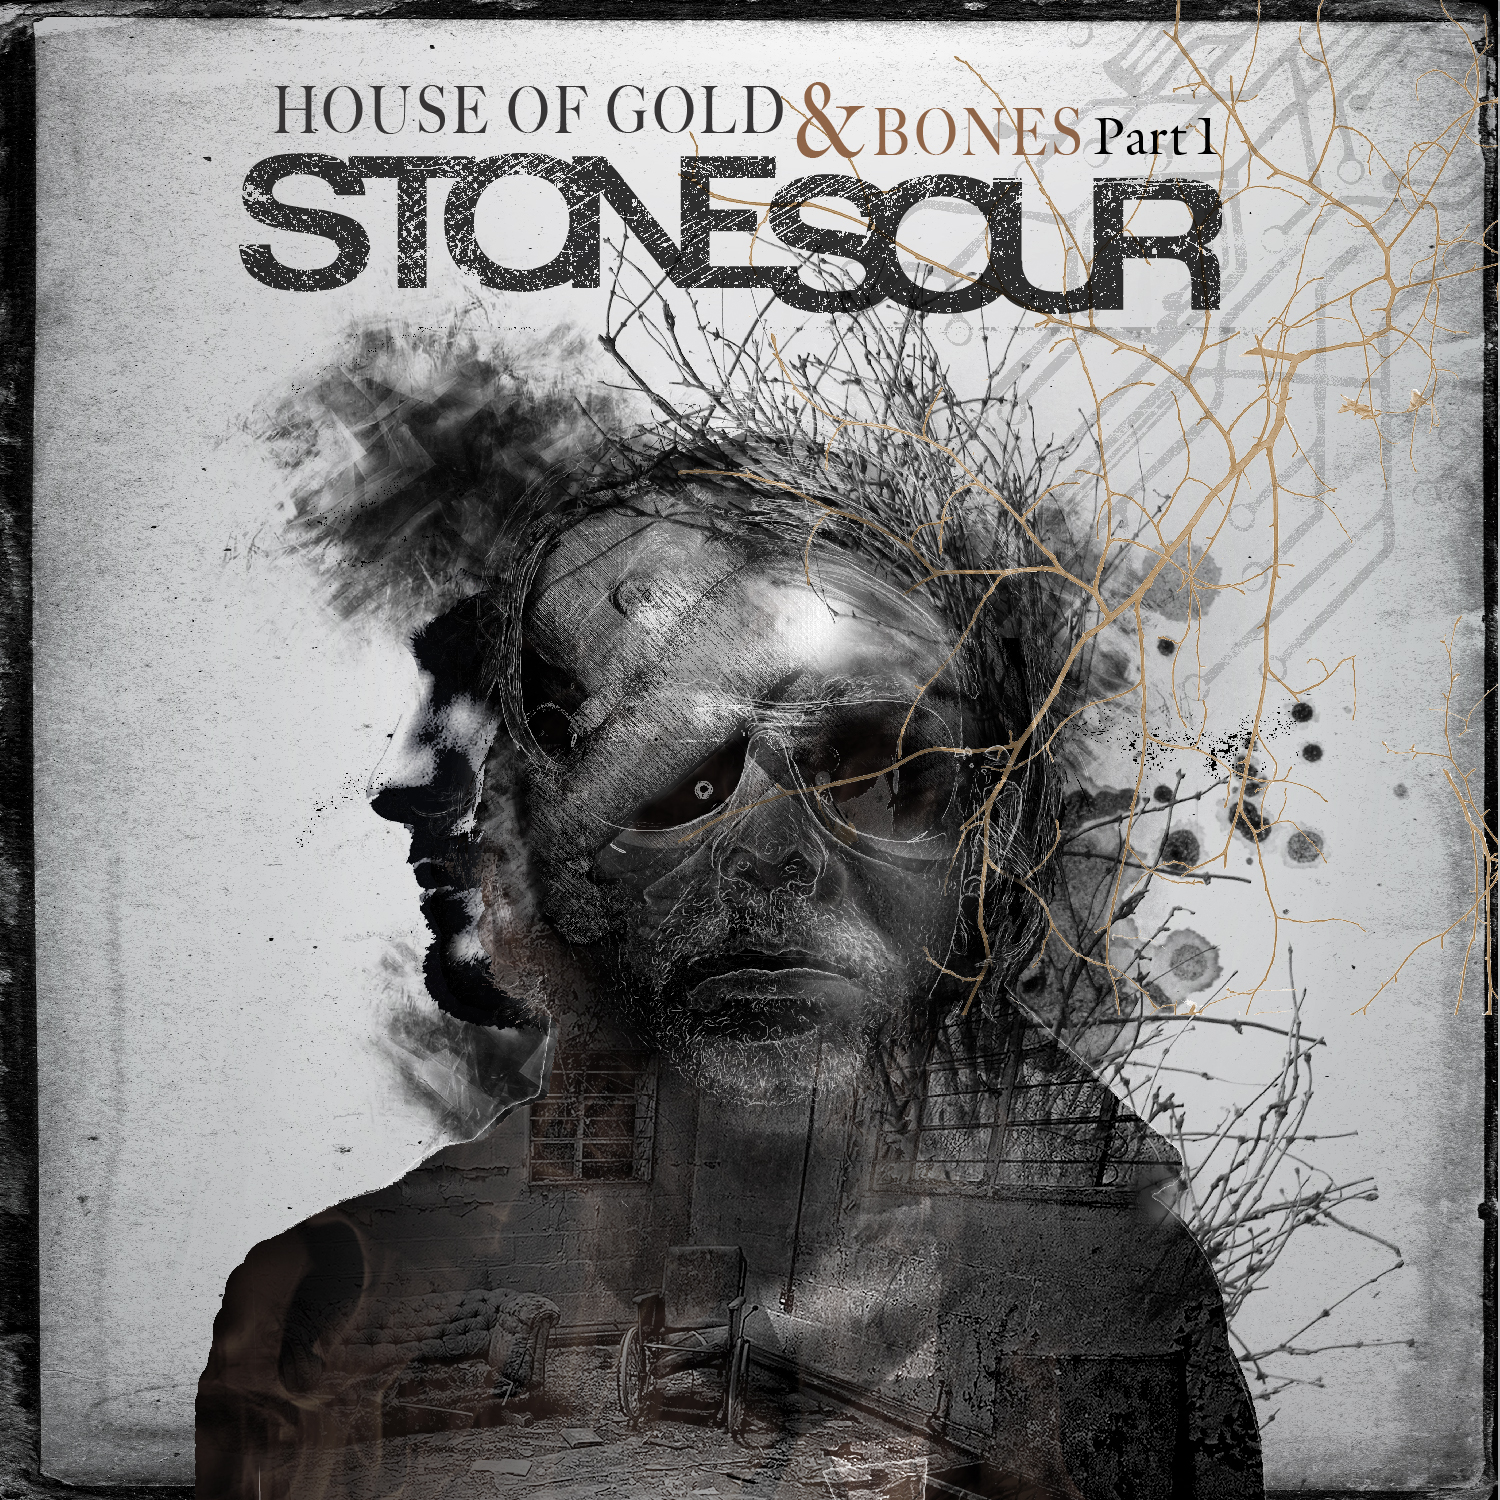 Az alapok lefektetve - Stone Sour - House of Gold and Bones - Part 1 (2012)